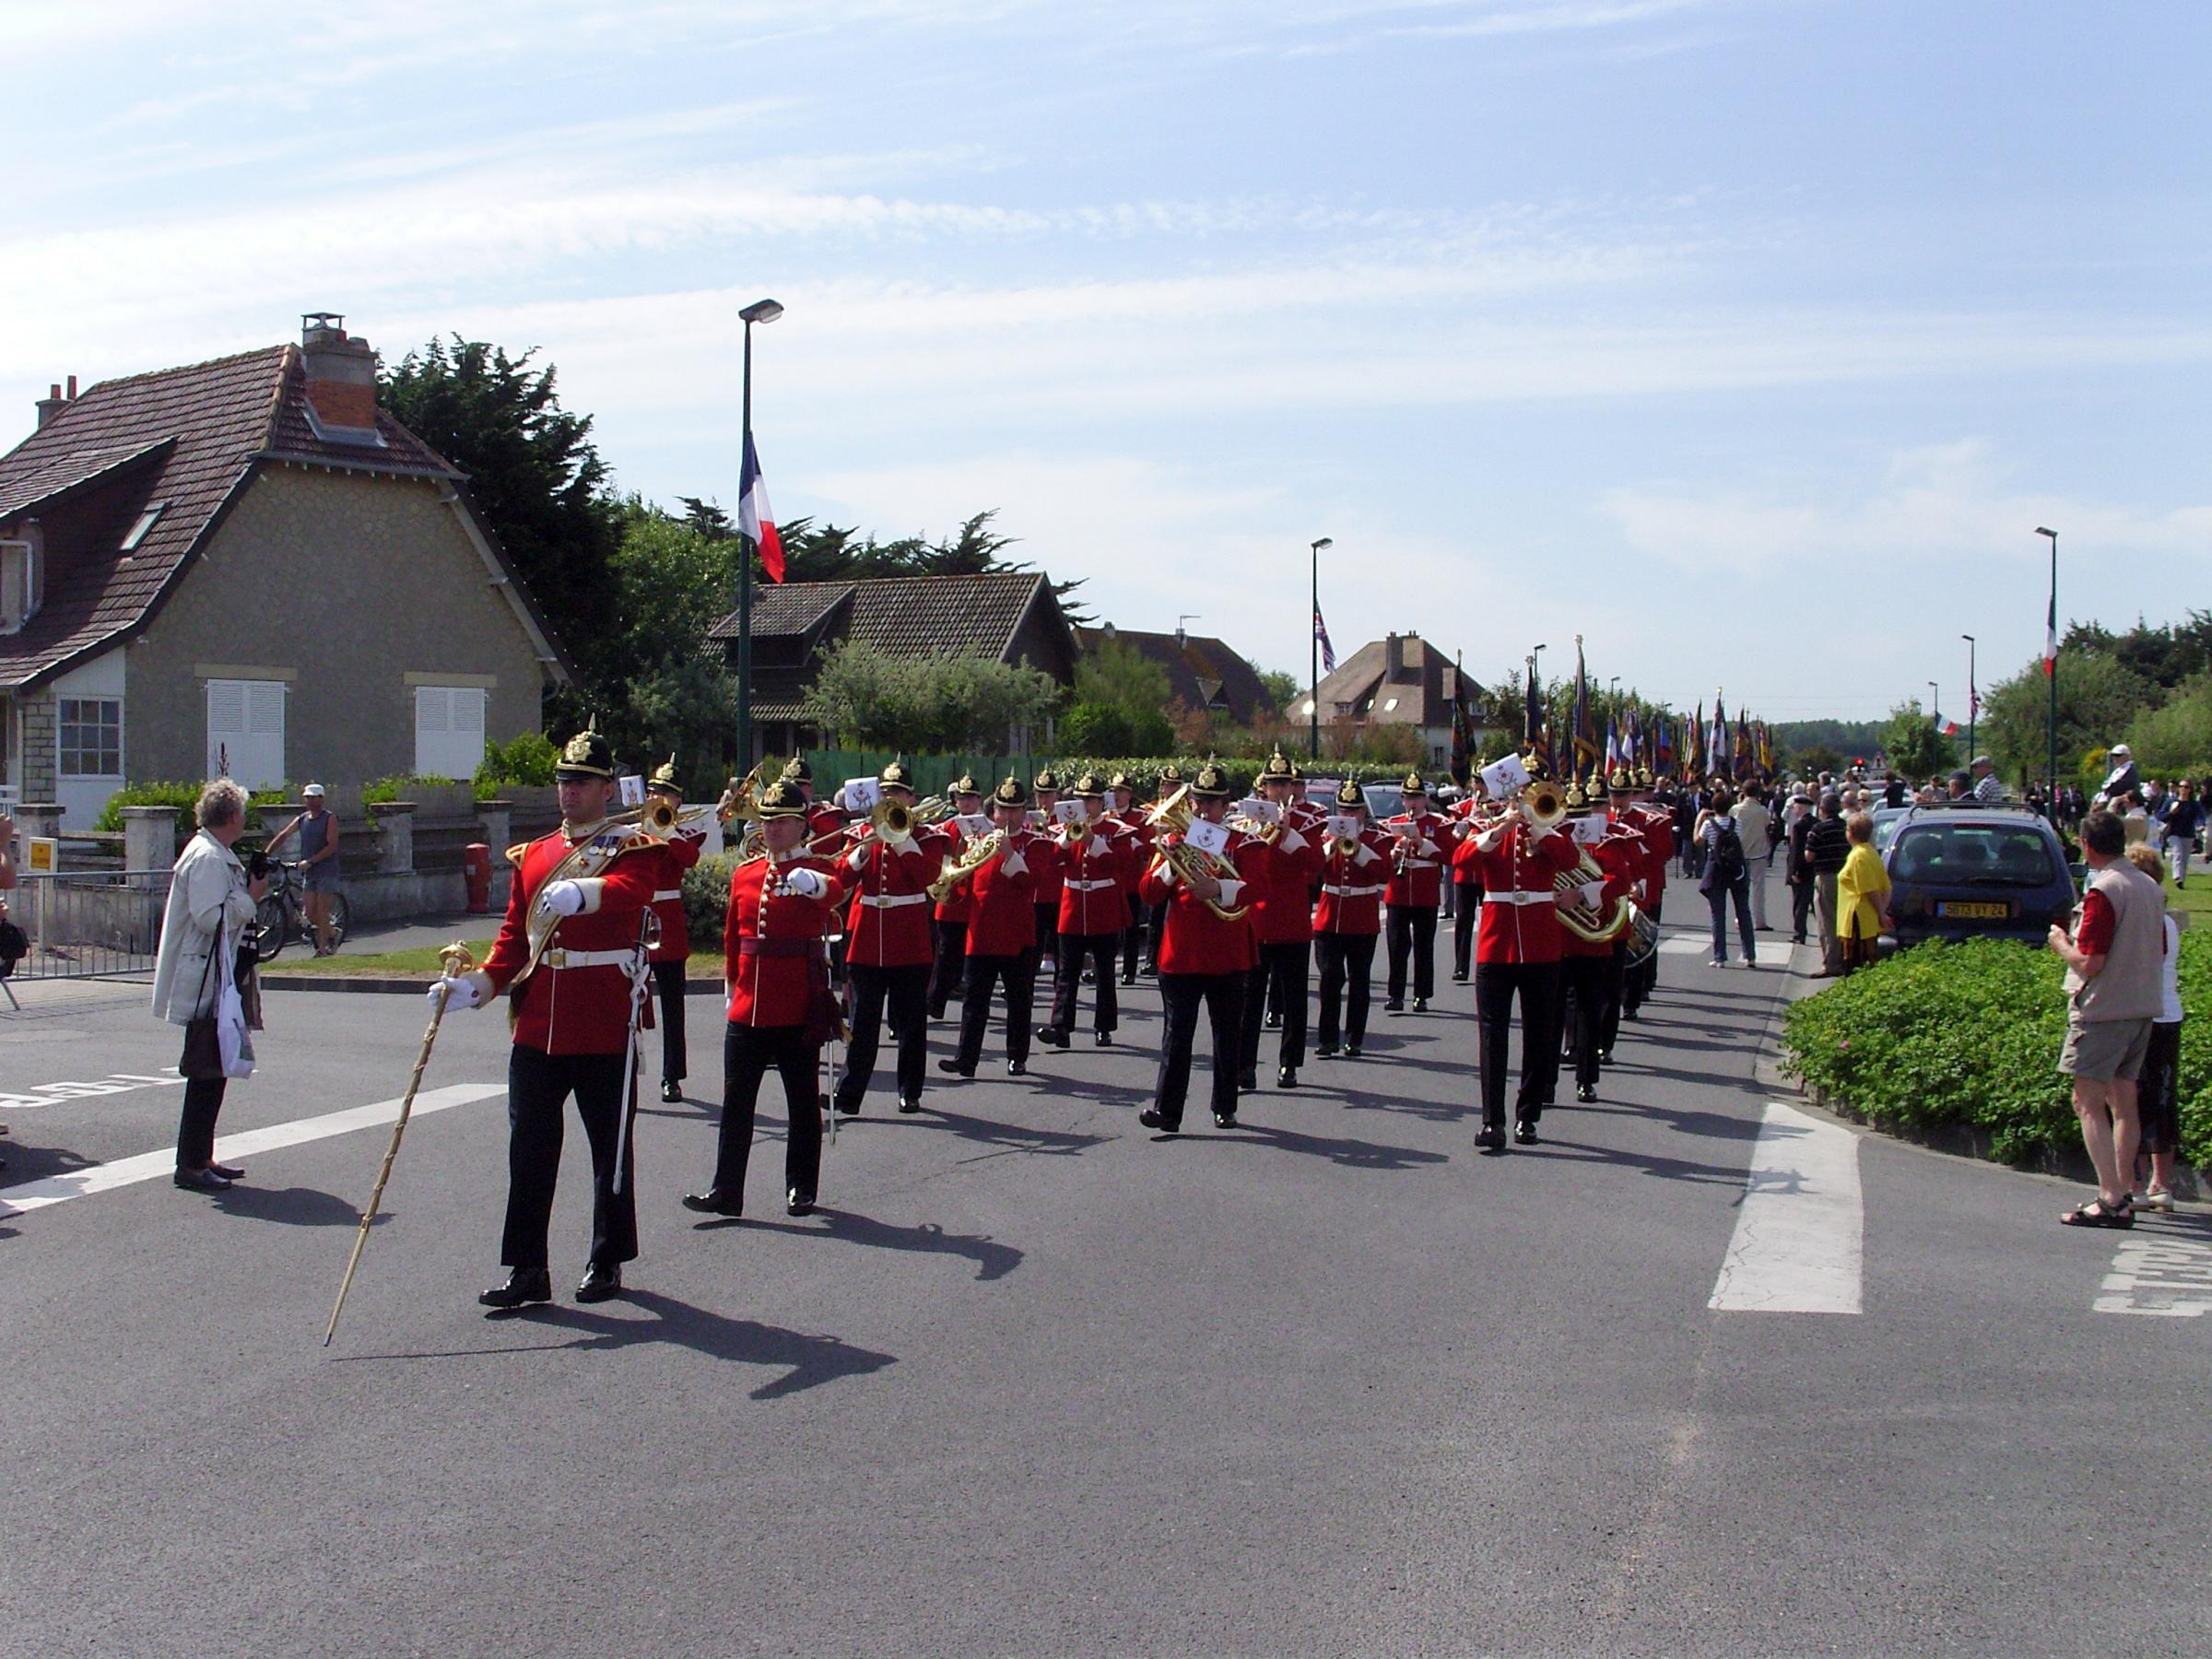 PARADE: Soldiers parade through Arromanches, Normandy.